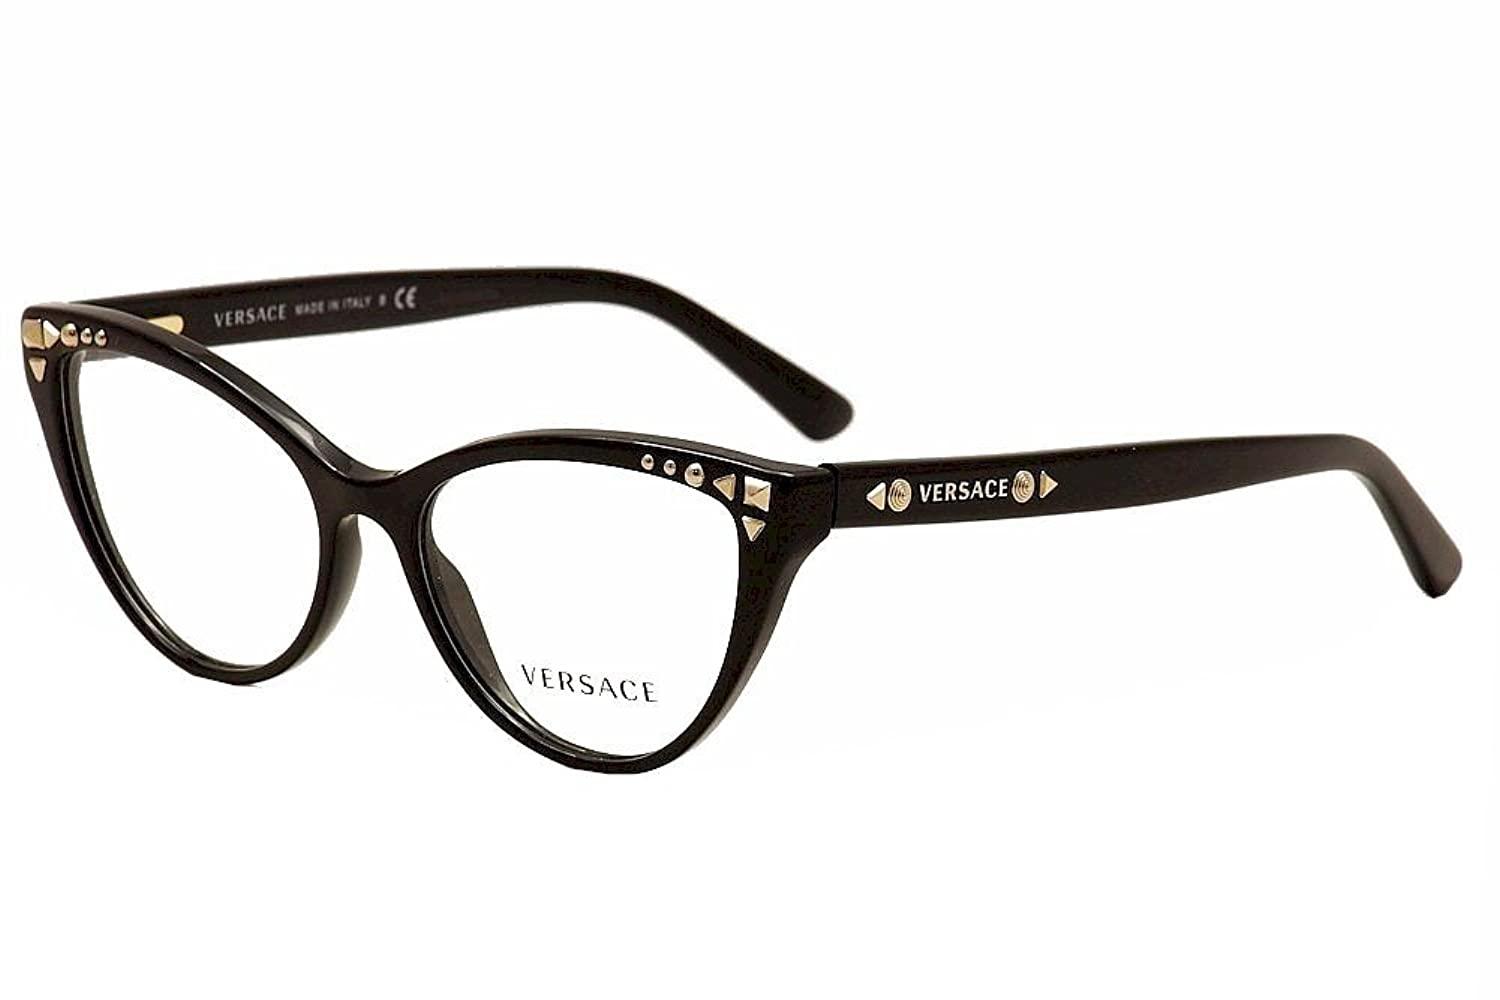 Clear Frame Versace Glasses : Versace Glasses Frames www.galleryhip.com - The Hippest Pics